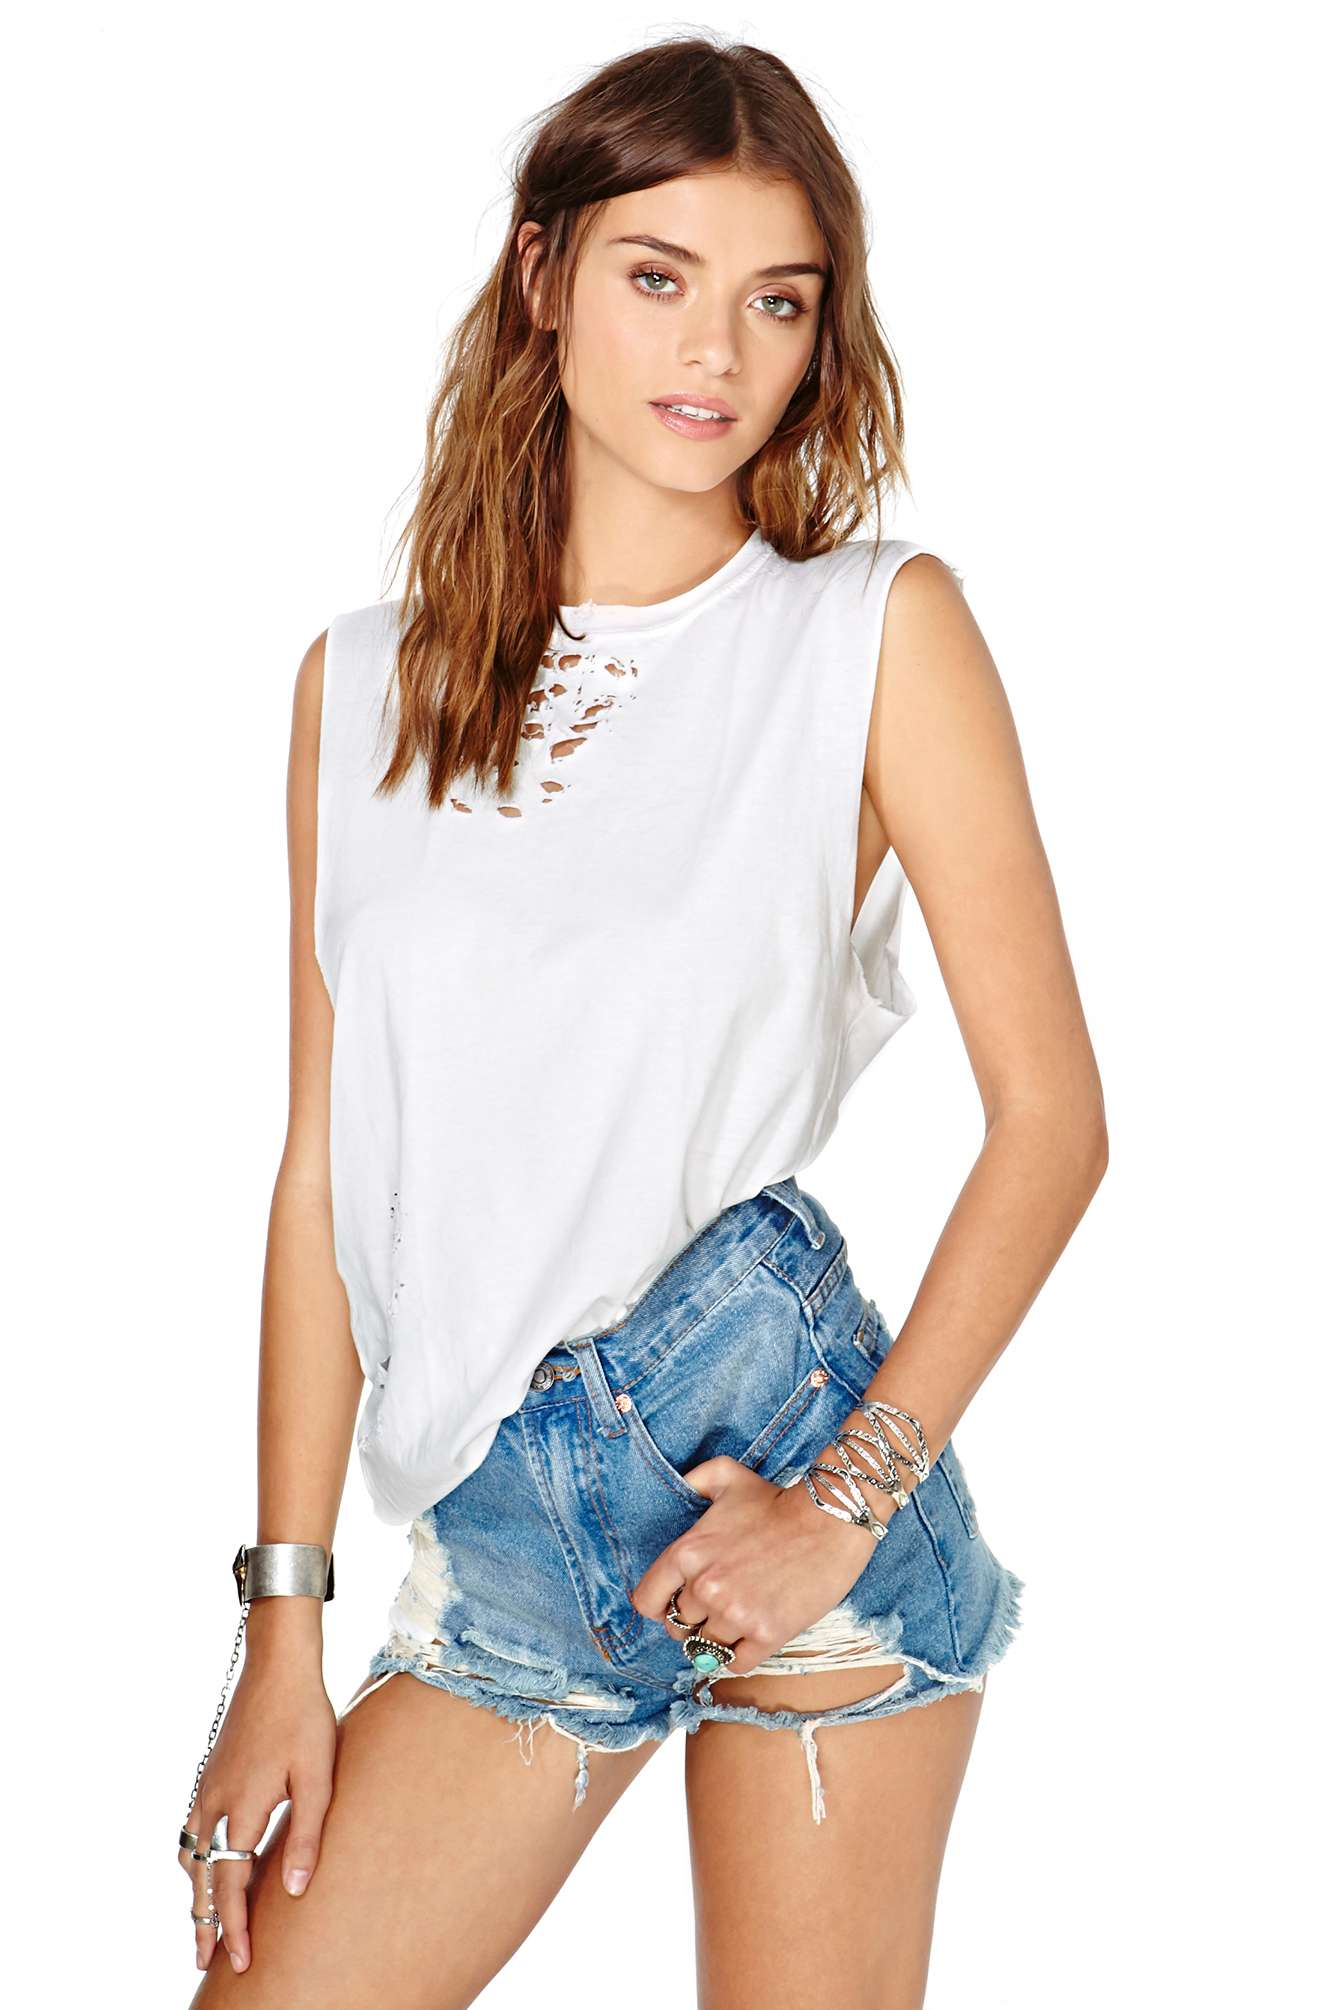 Get The Cut-Off Denim Shorts With The Perfect Shred! (And The Legs To Go With Them!)